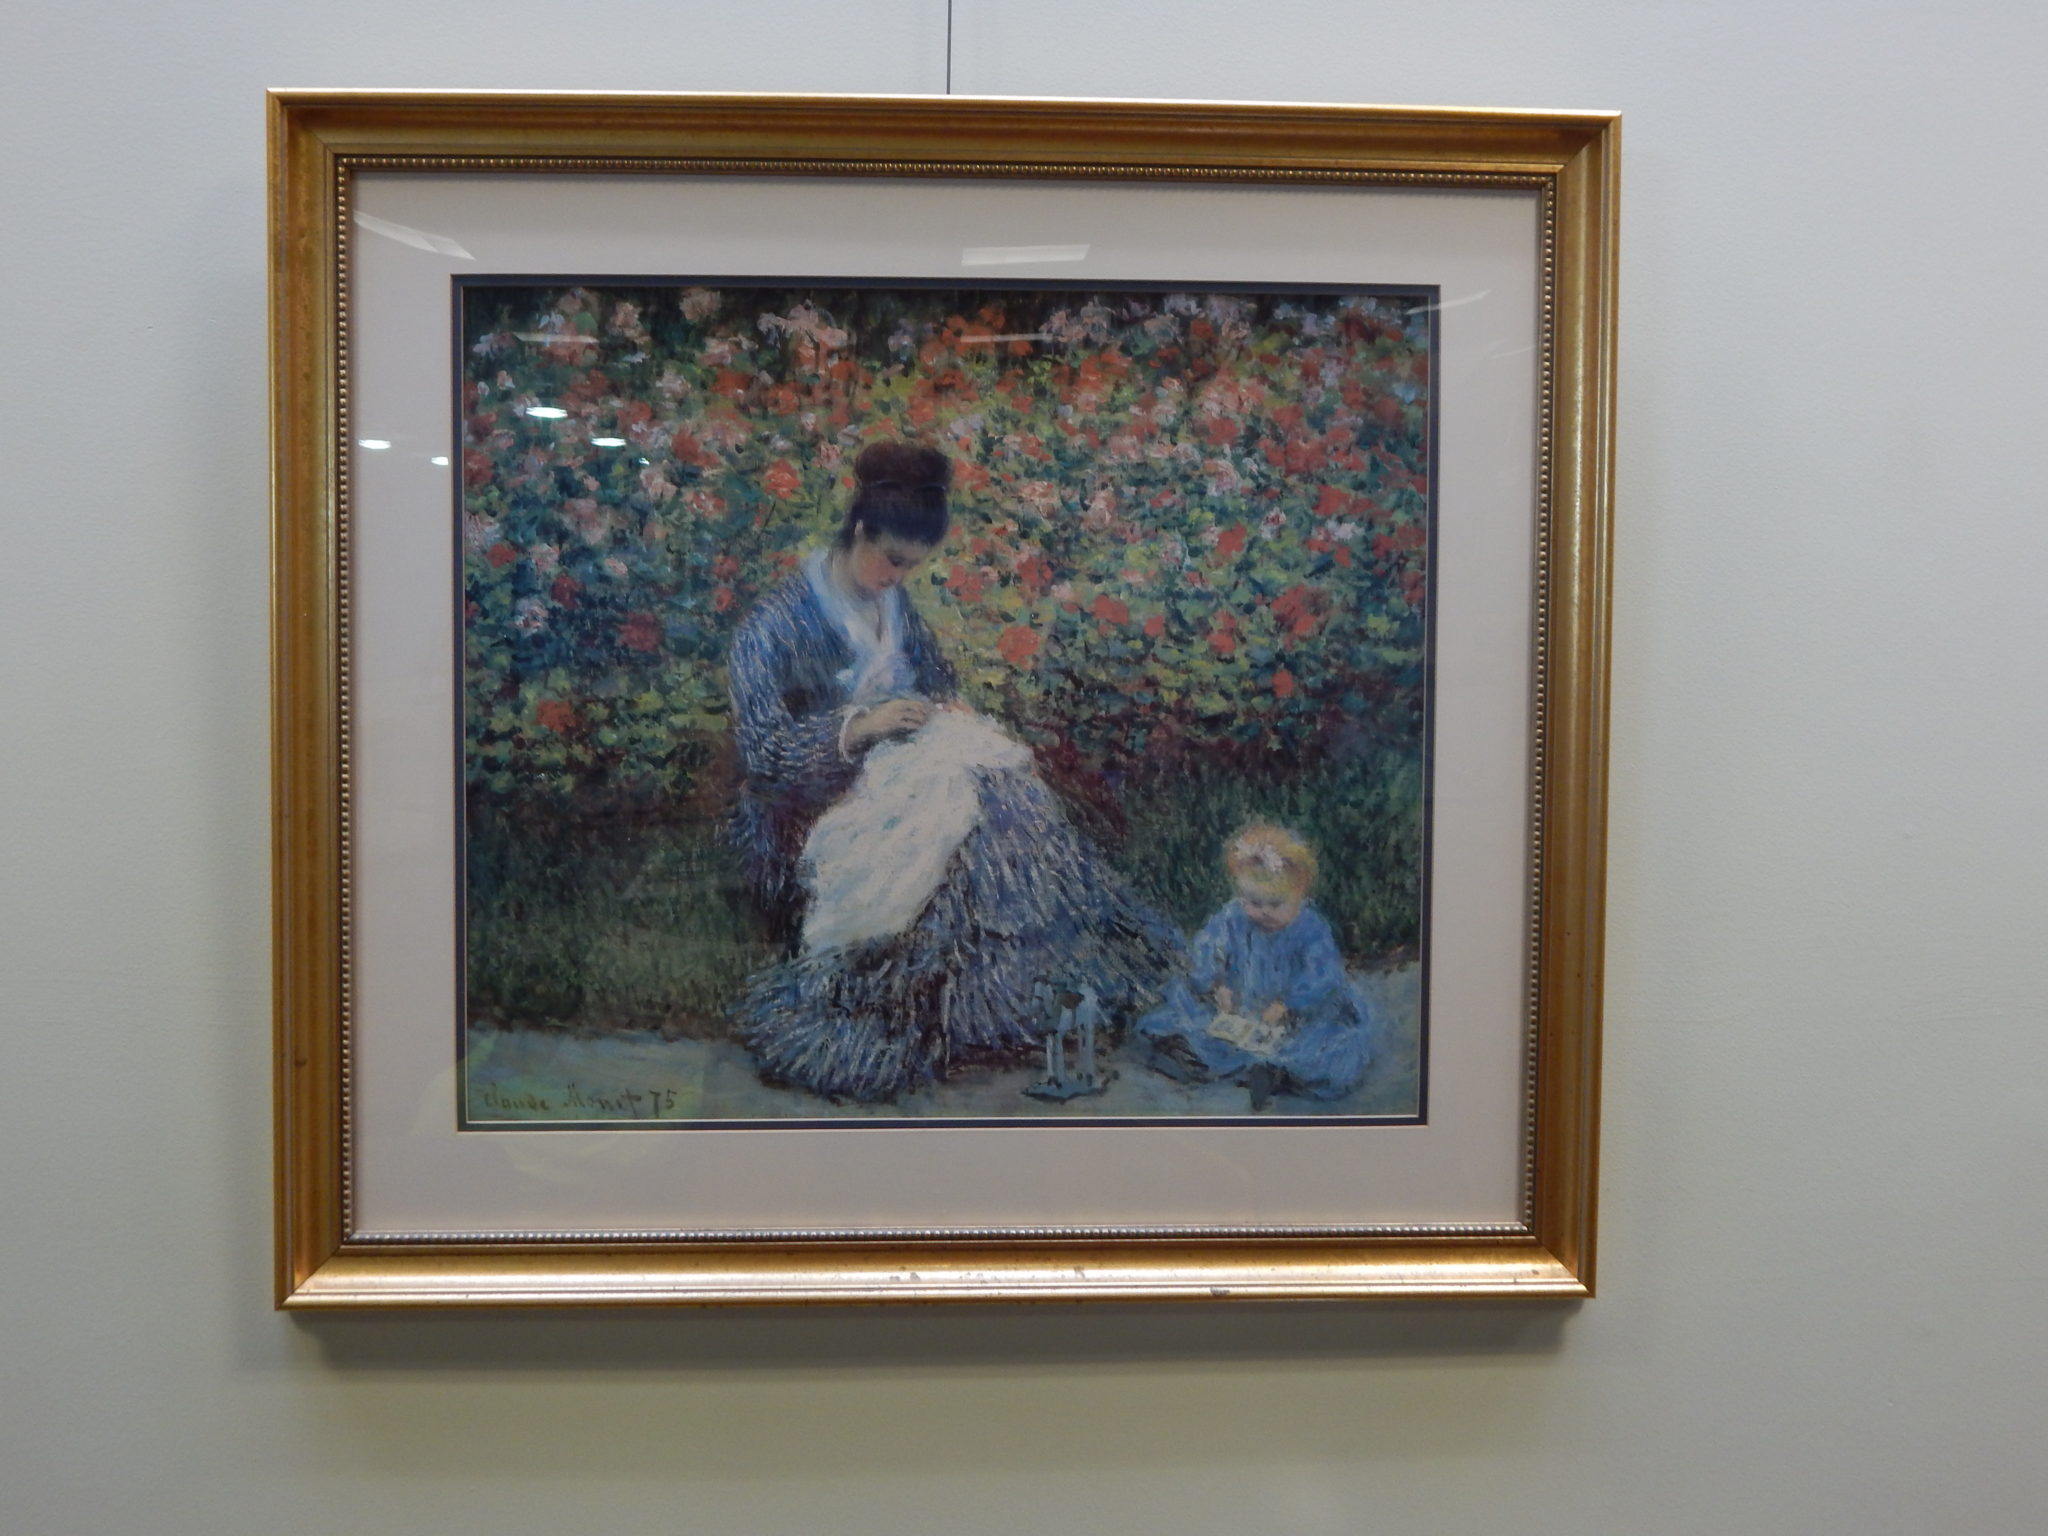 Camille Monet and a Child in the Artist's Garden in Argenteuil, 1875, by Claude Monet, print